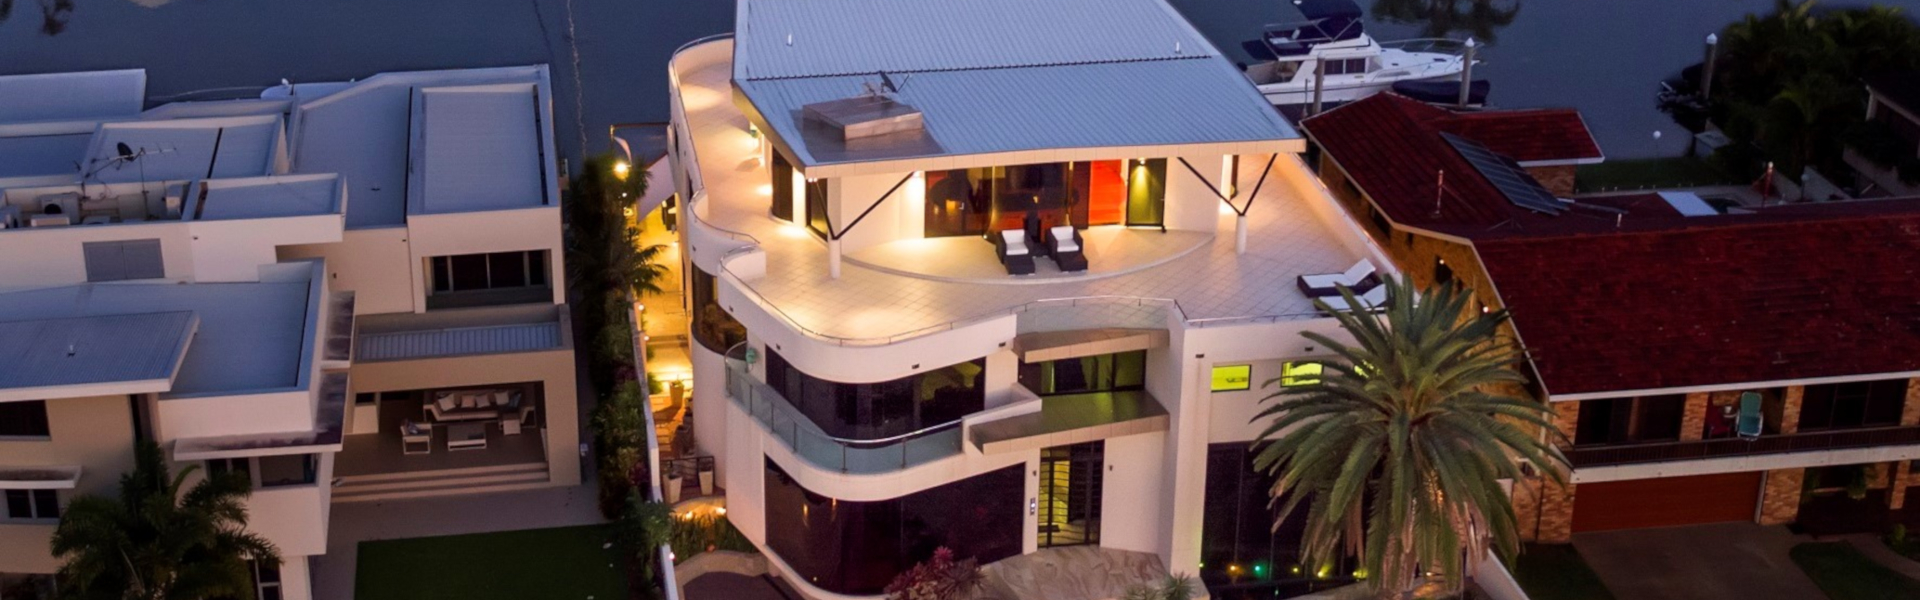 A Twilight Front of House LR1